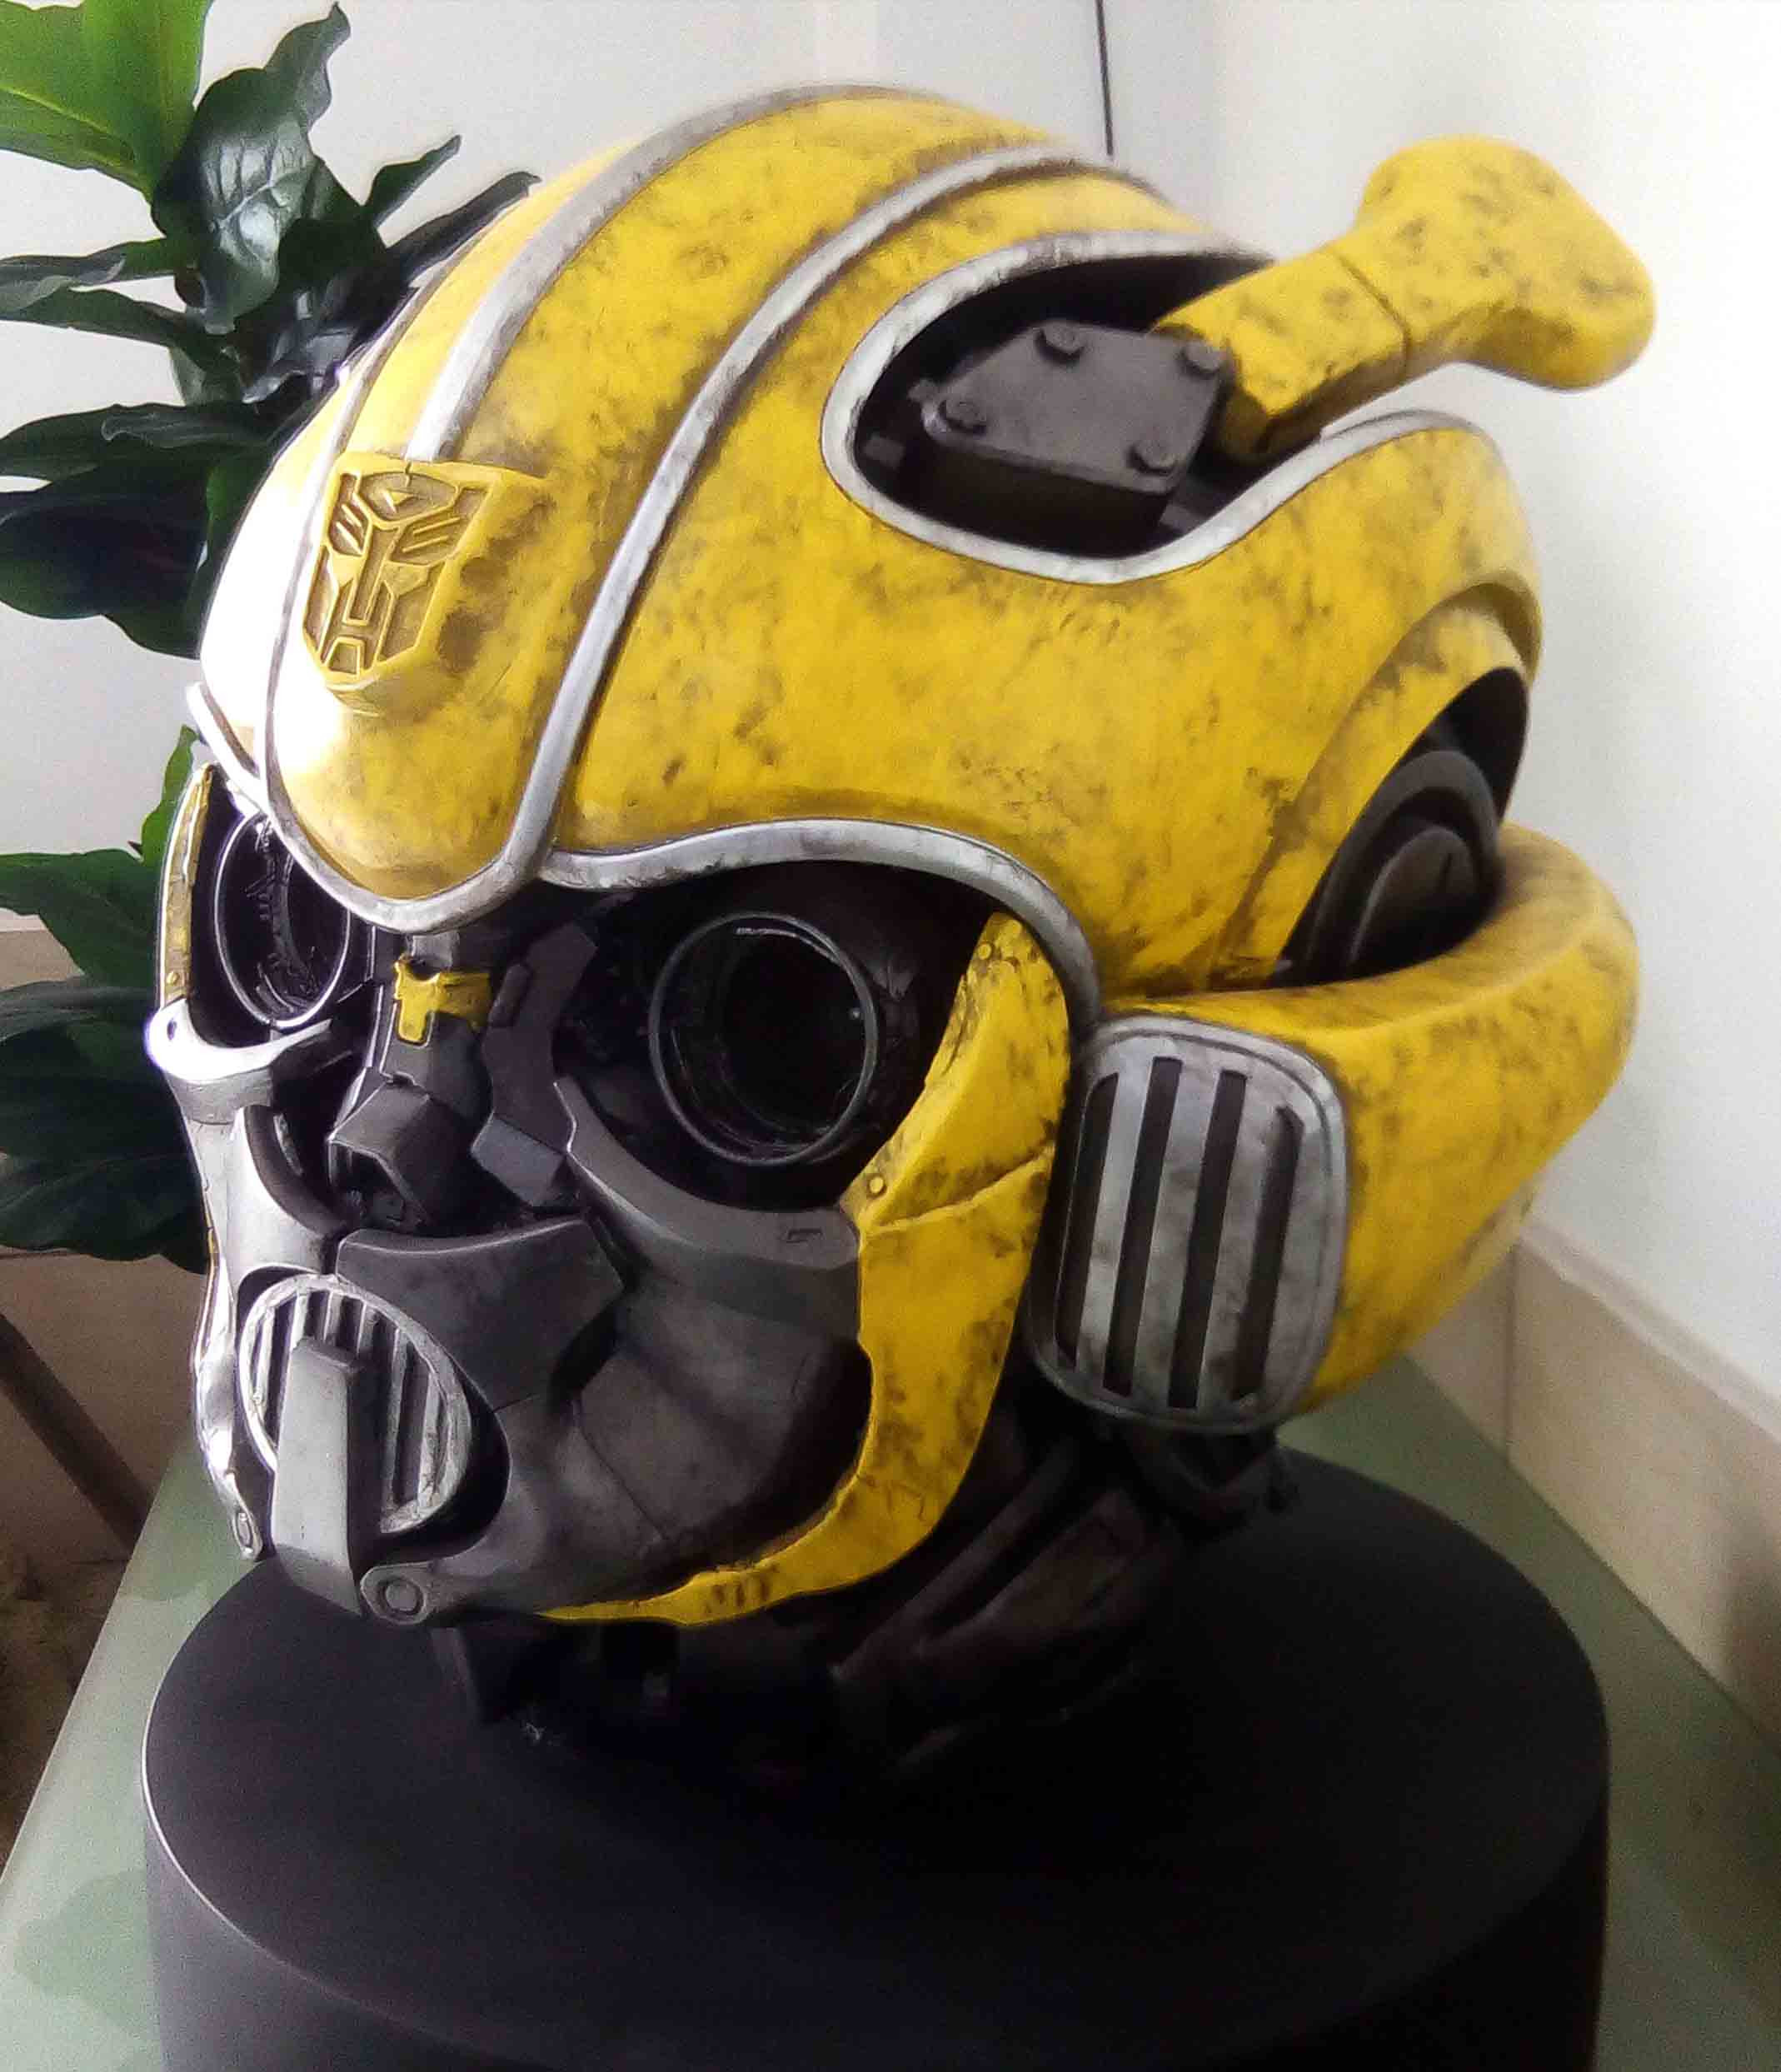 Bumblebee-Paramount Pictures-Designed by Yacine BRINIS-004-3D Printed an painted